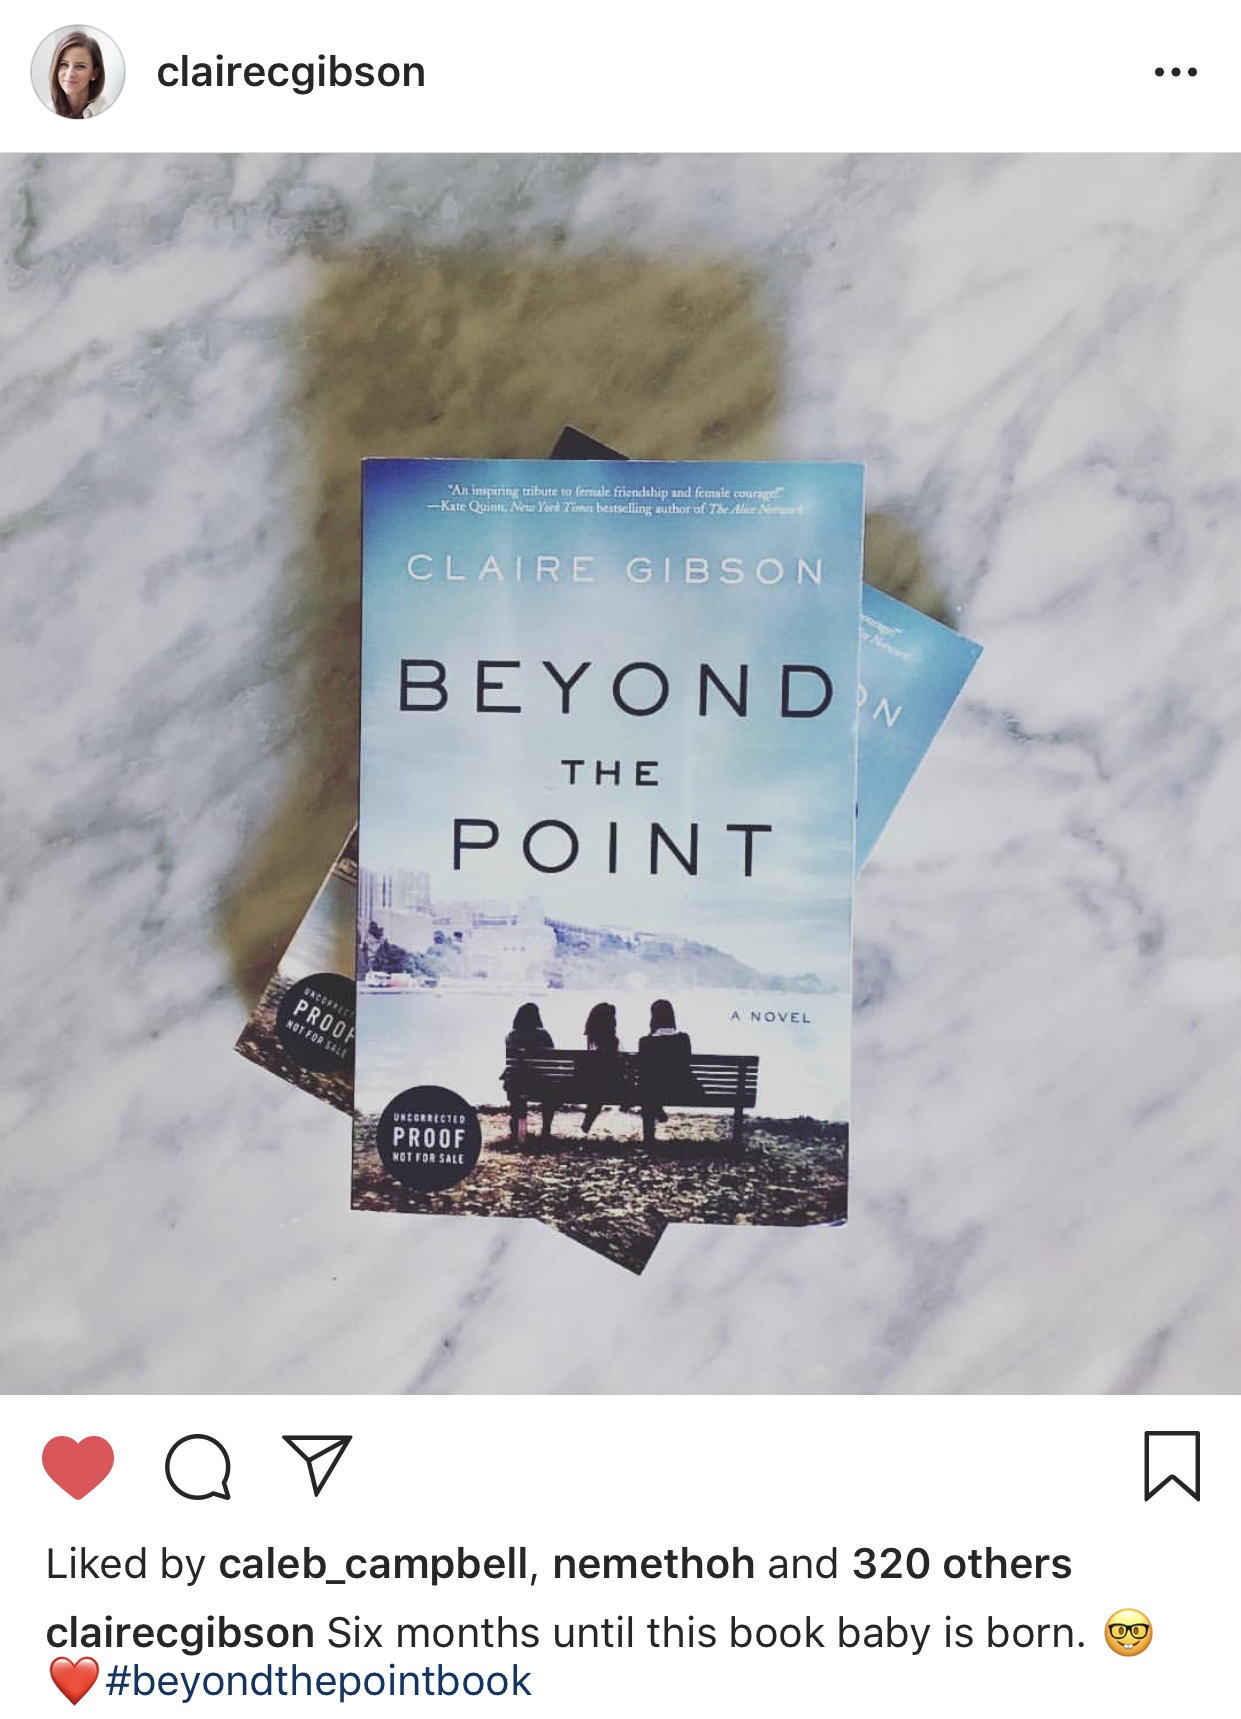 PRE-ORDER NOW -  https://www.harpercollins.com/9780062853745/beyond-the-point/